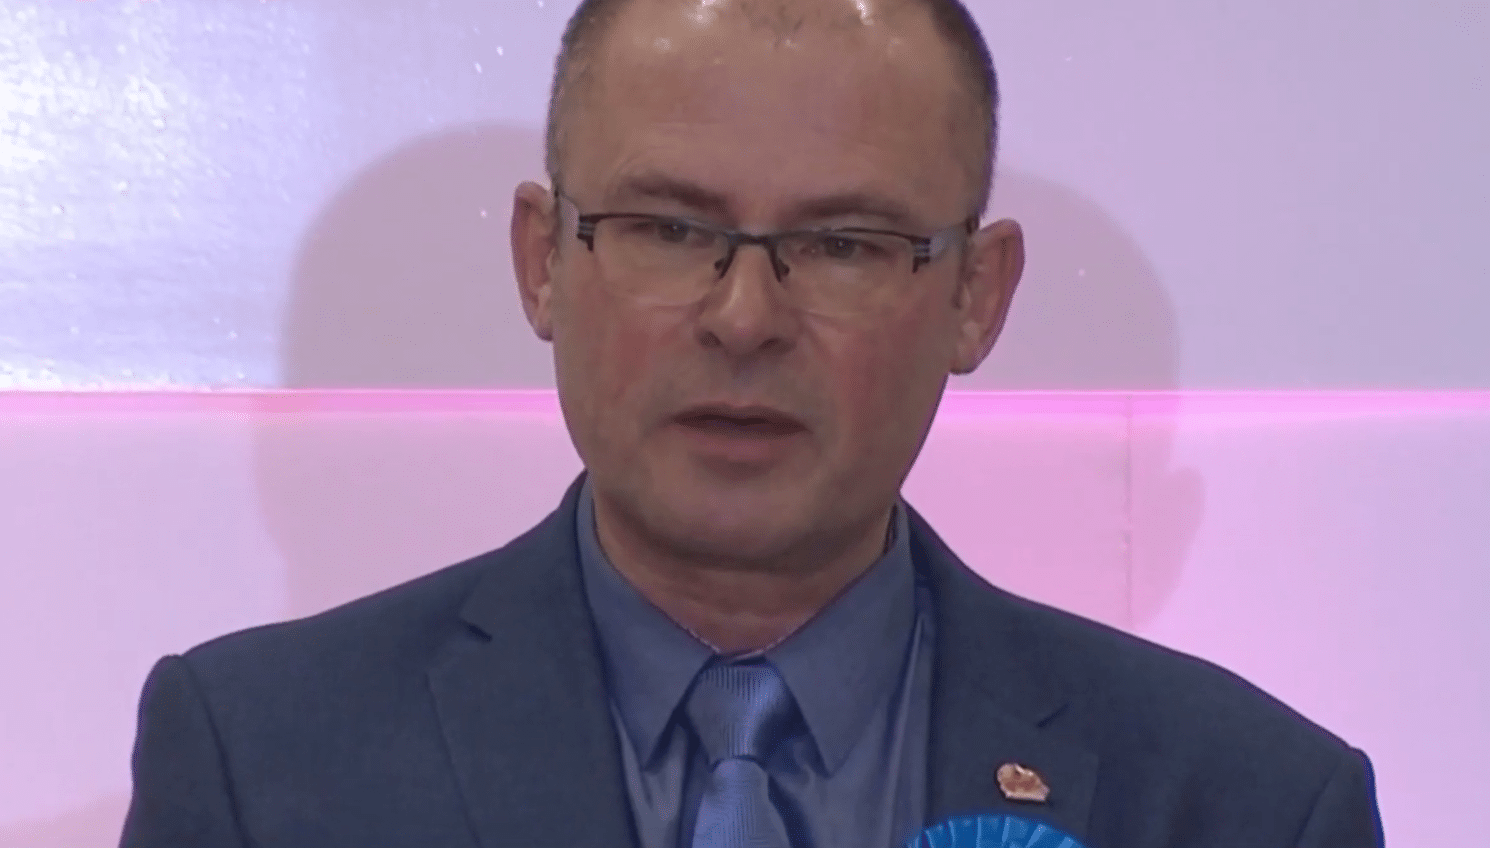 Newly-elected MP falsely claims he is a 'mental health nurse'